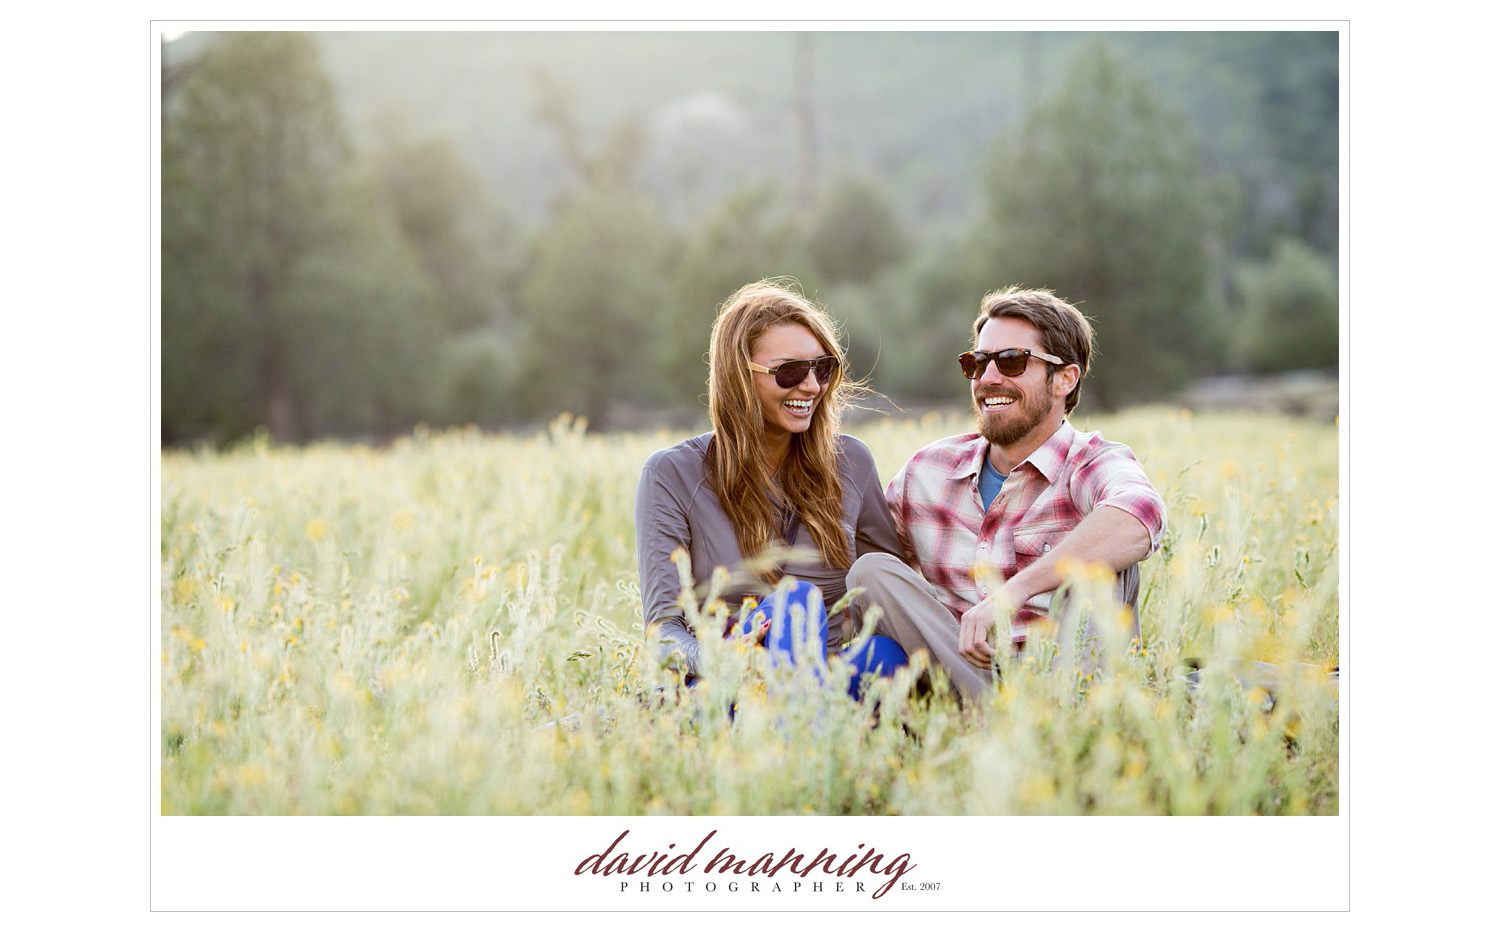 SOLO-Eyewear--Commercial-Editorial-Photos-David-Manning-Photographers-0036.jpg